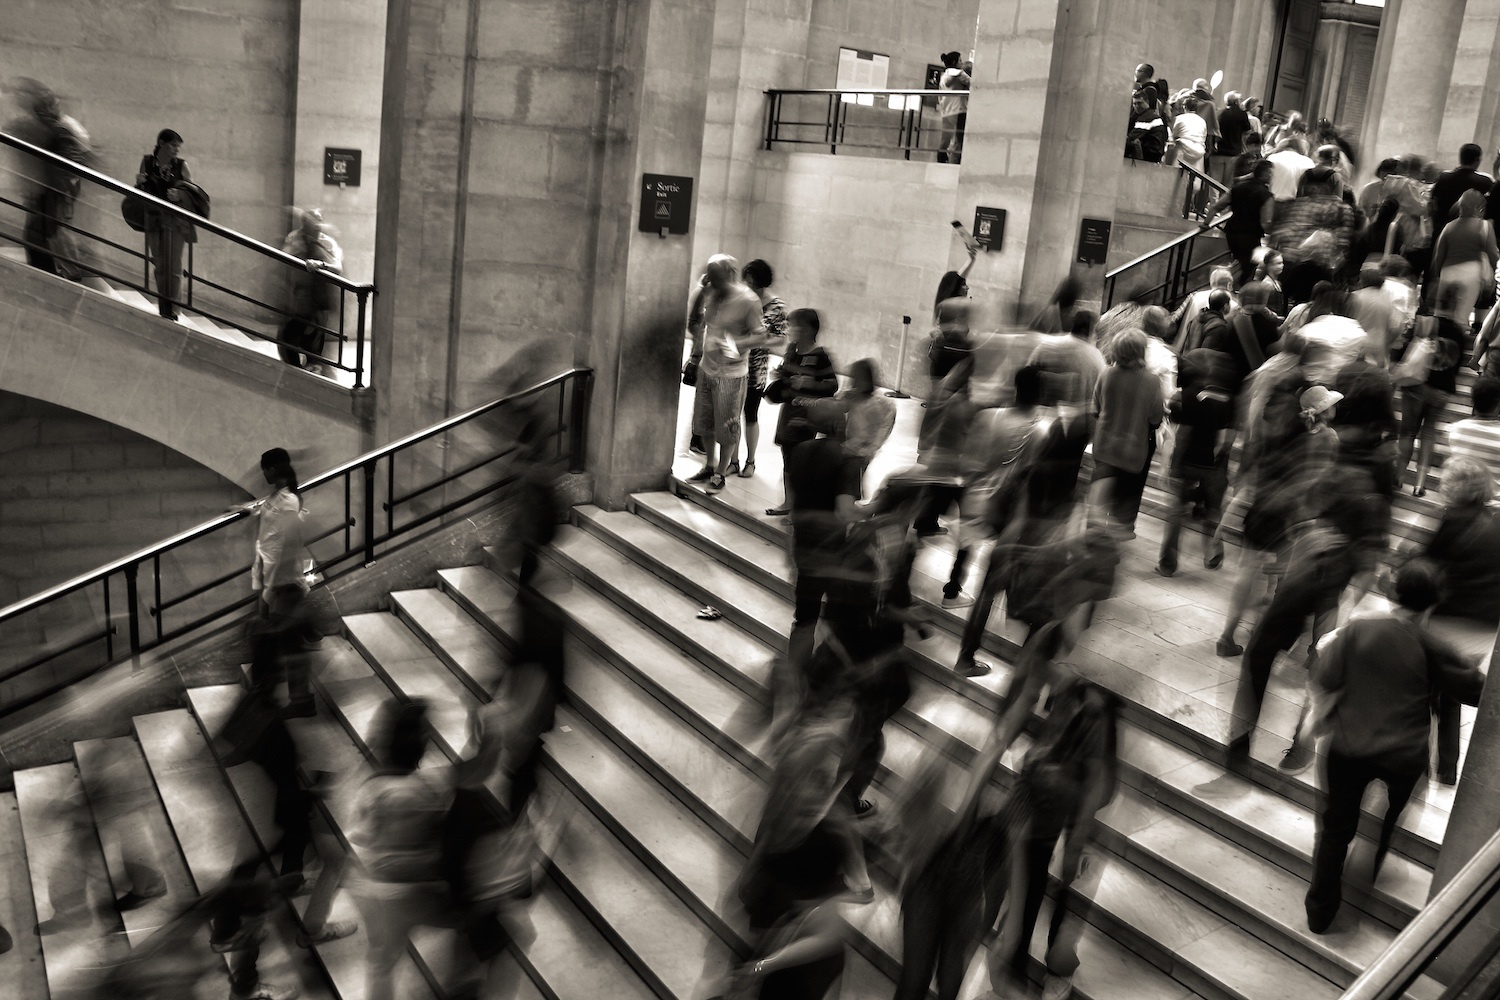 Crowded MarTech Space